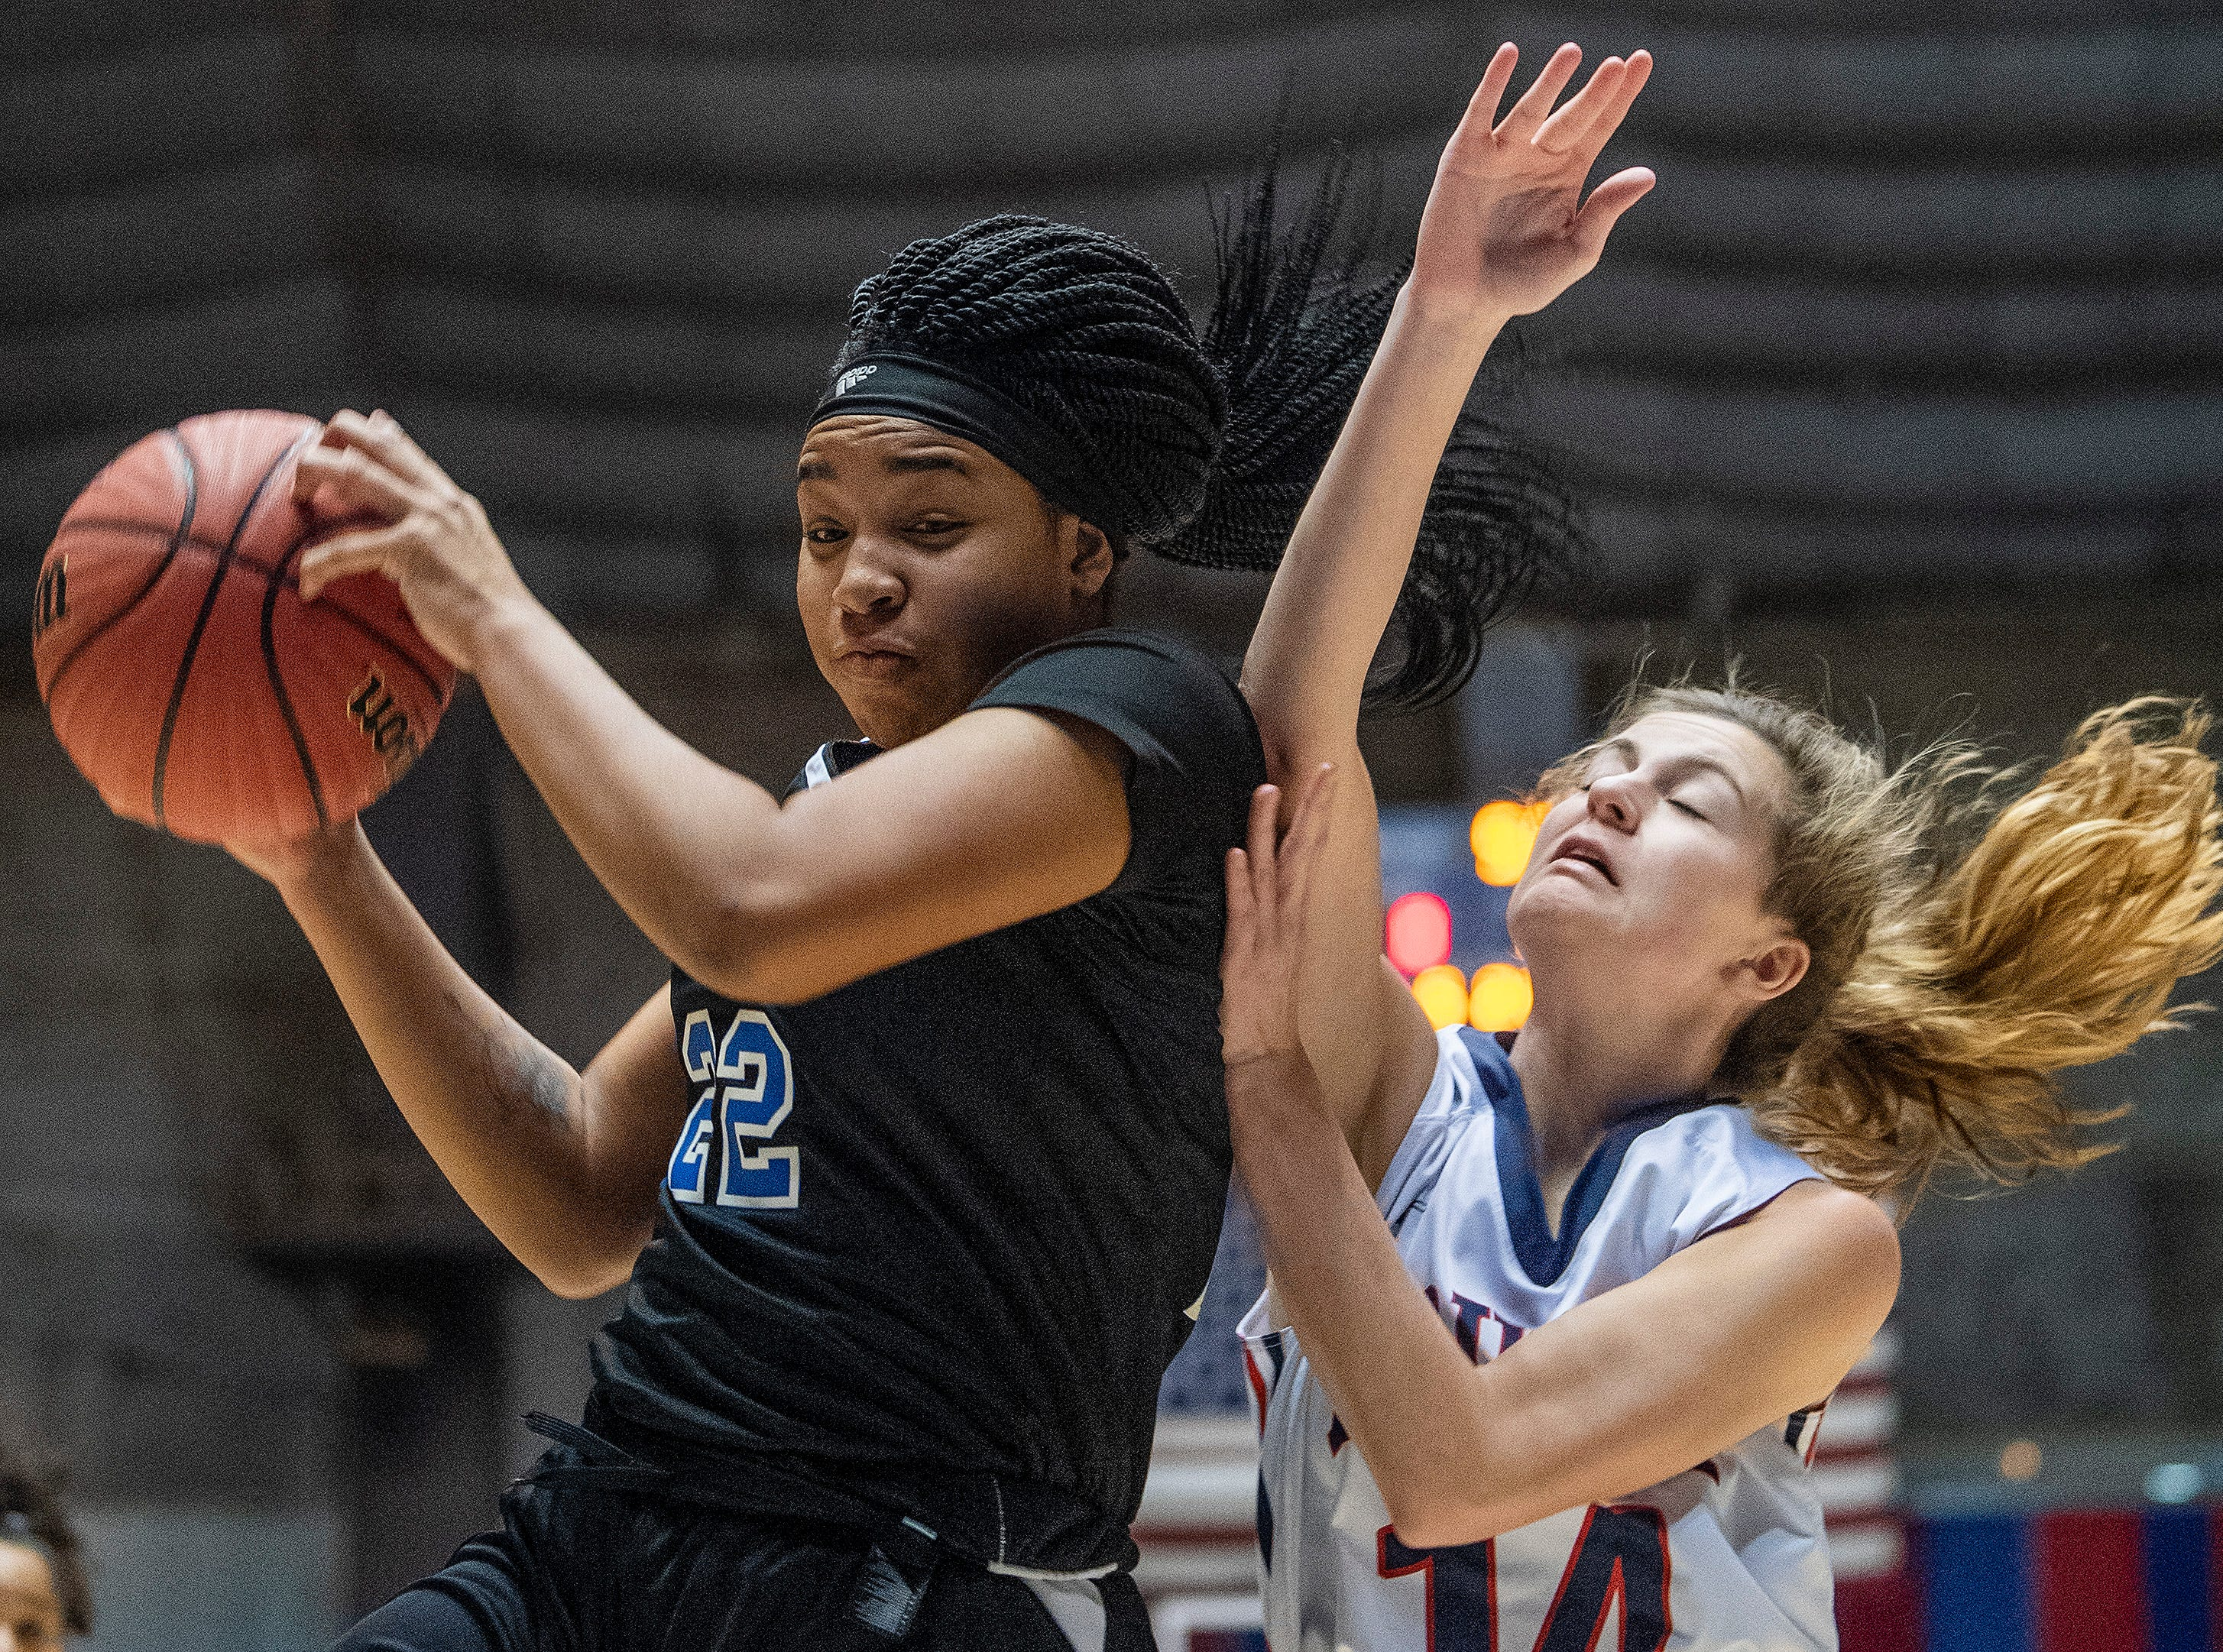 Childersburg's Keasia McKinney grabs a rebound over Trinity's Kenslee Harrison in AHSAA Regional action at Garrett Coliseum in Montgomery, Ala., on Monday February 18, 2019.